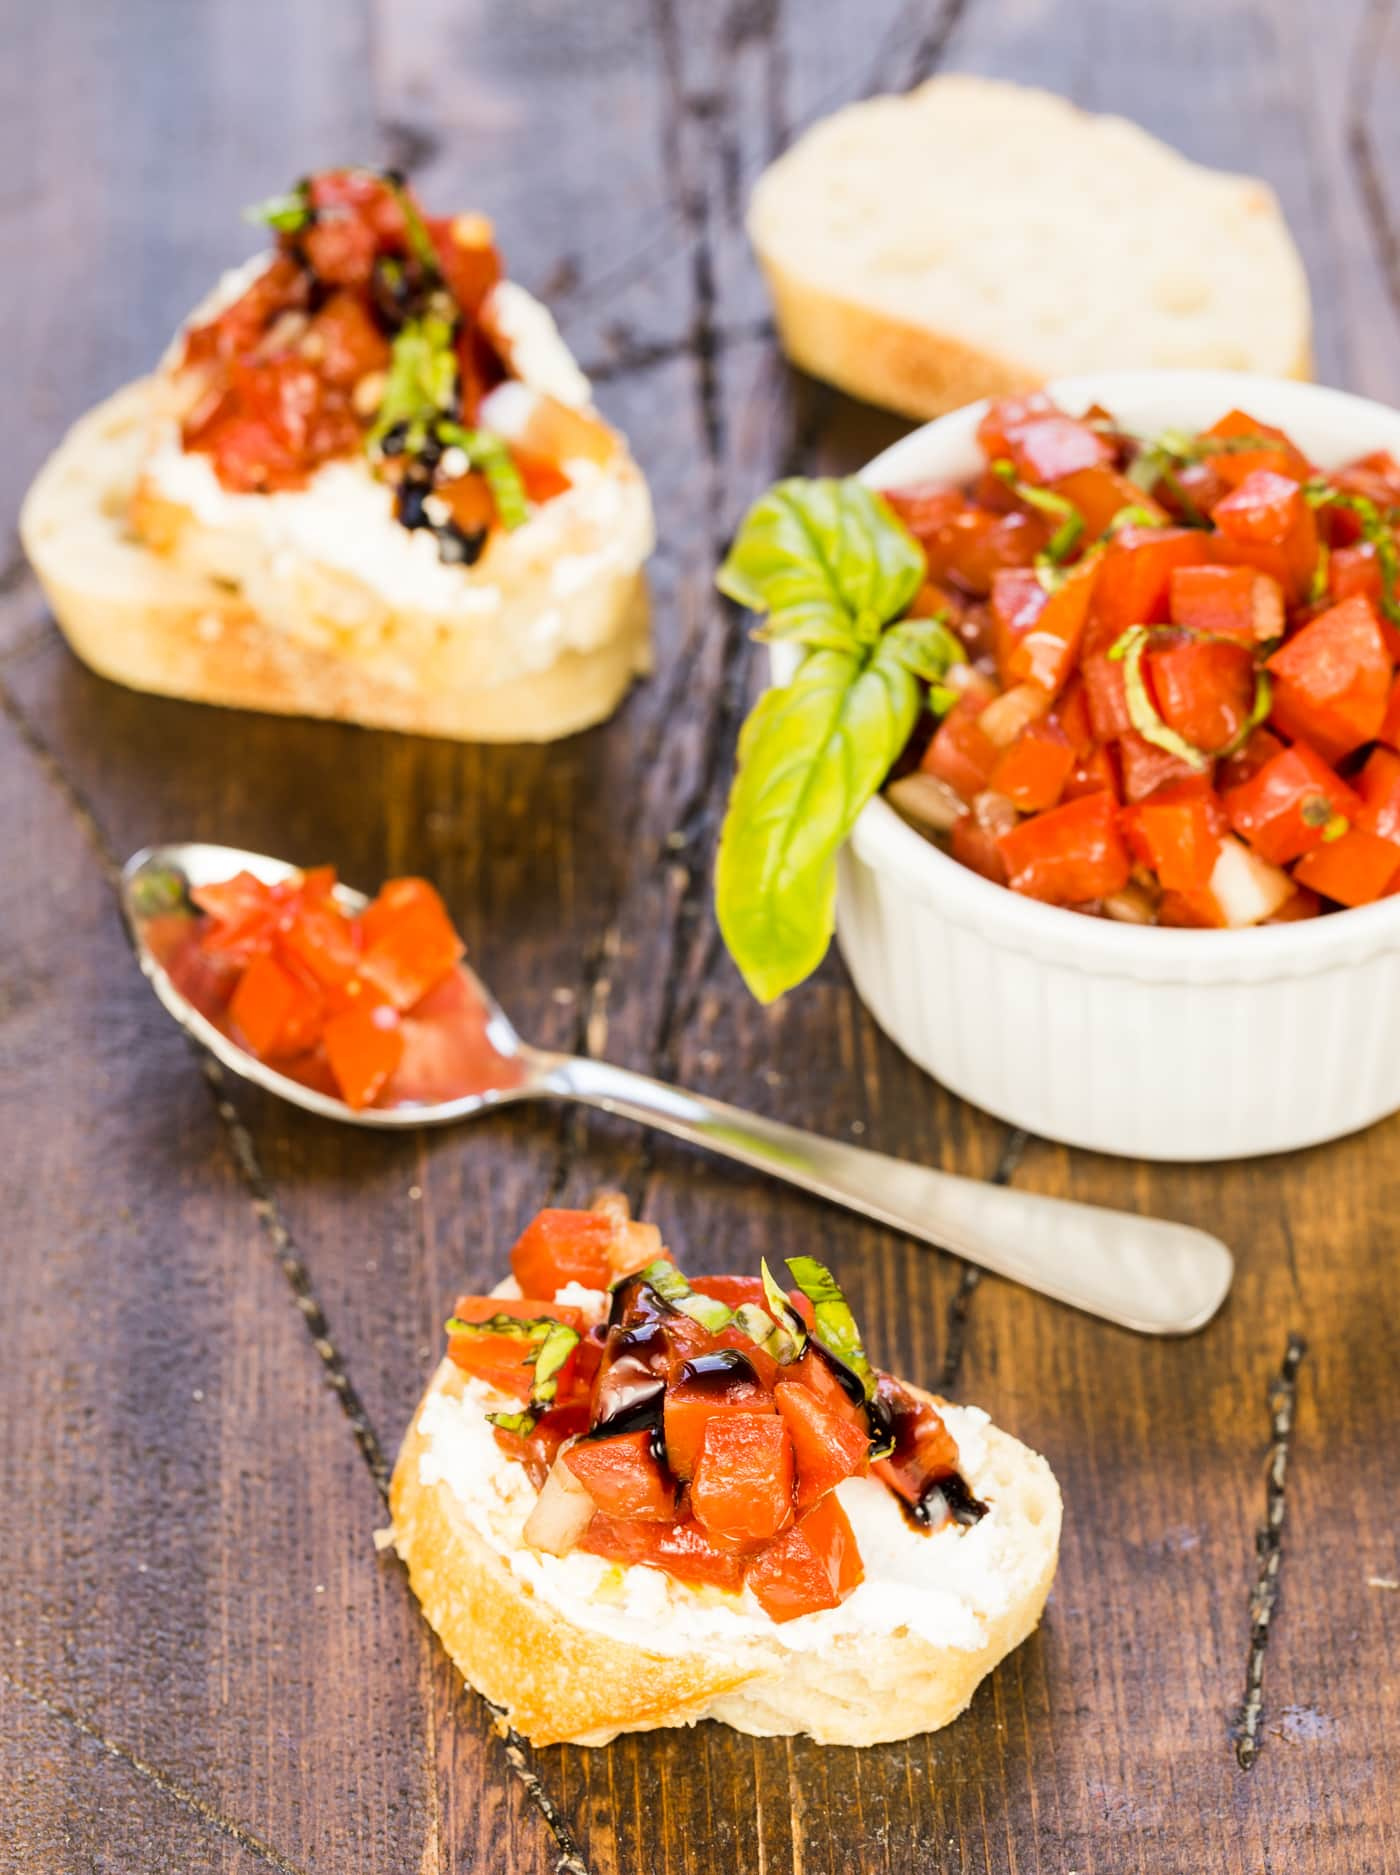 Balsamic bruschetta in white ramekin on dark board with slices of crostini spread with ricotta cheese and topped with bruschetta. Basil leaves on table as well as small spoon filled with bruschetta.